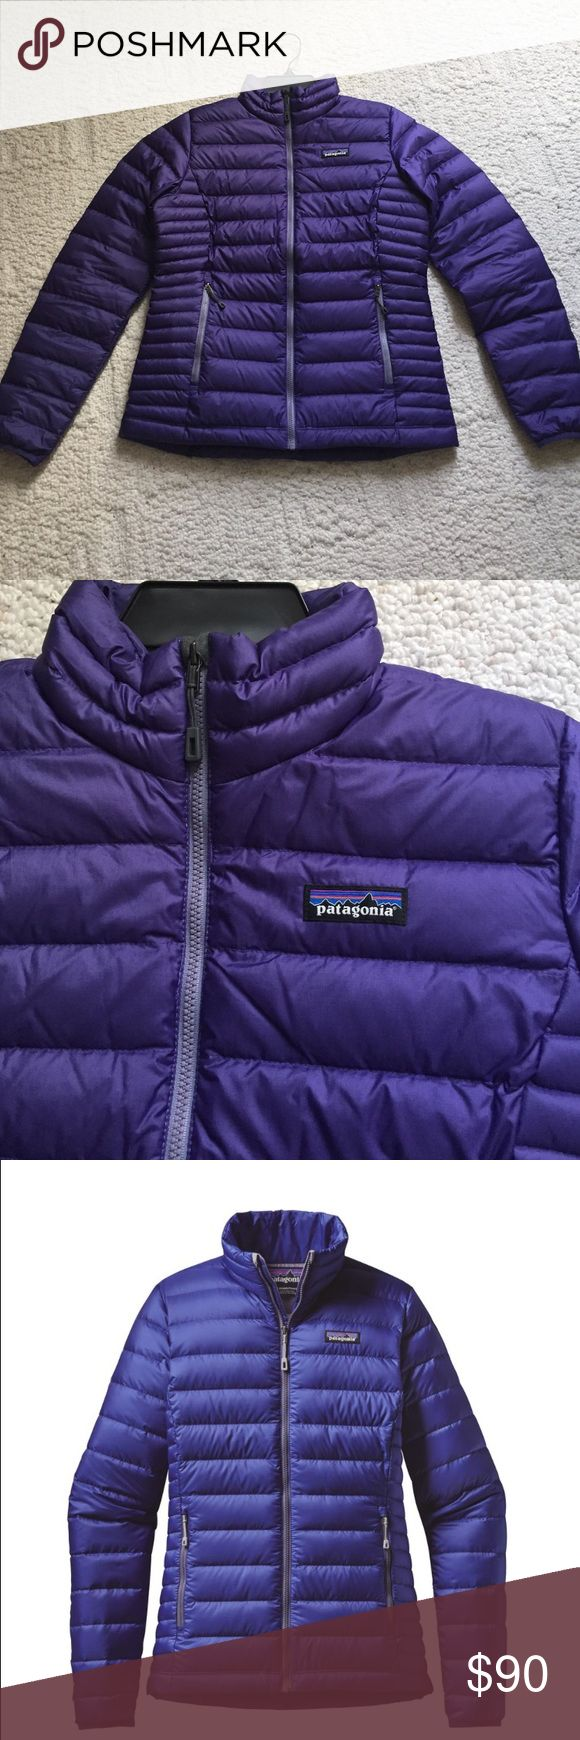 Patagonia Down Sweater Jacket Women's Patagonia down sweater jacket for women. Purple color. One inside pocket and two outside hand pockets. Excellent condition, no flaws. Purchased from REI. Patagonia Jackets & Coats Puffers